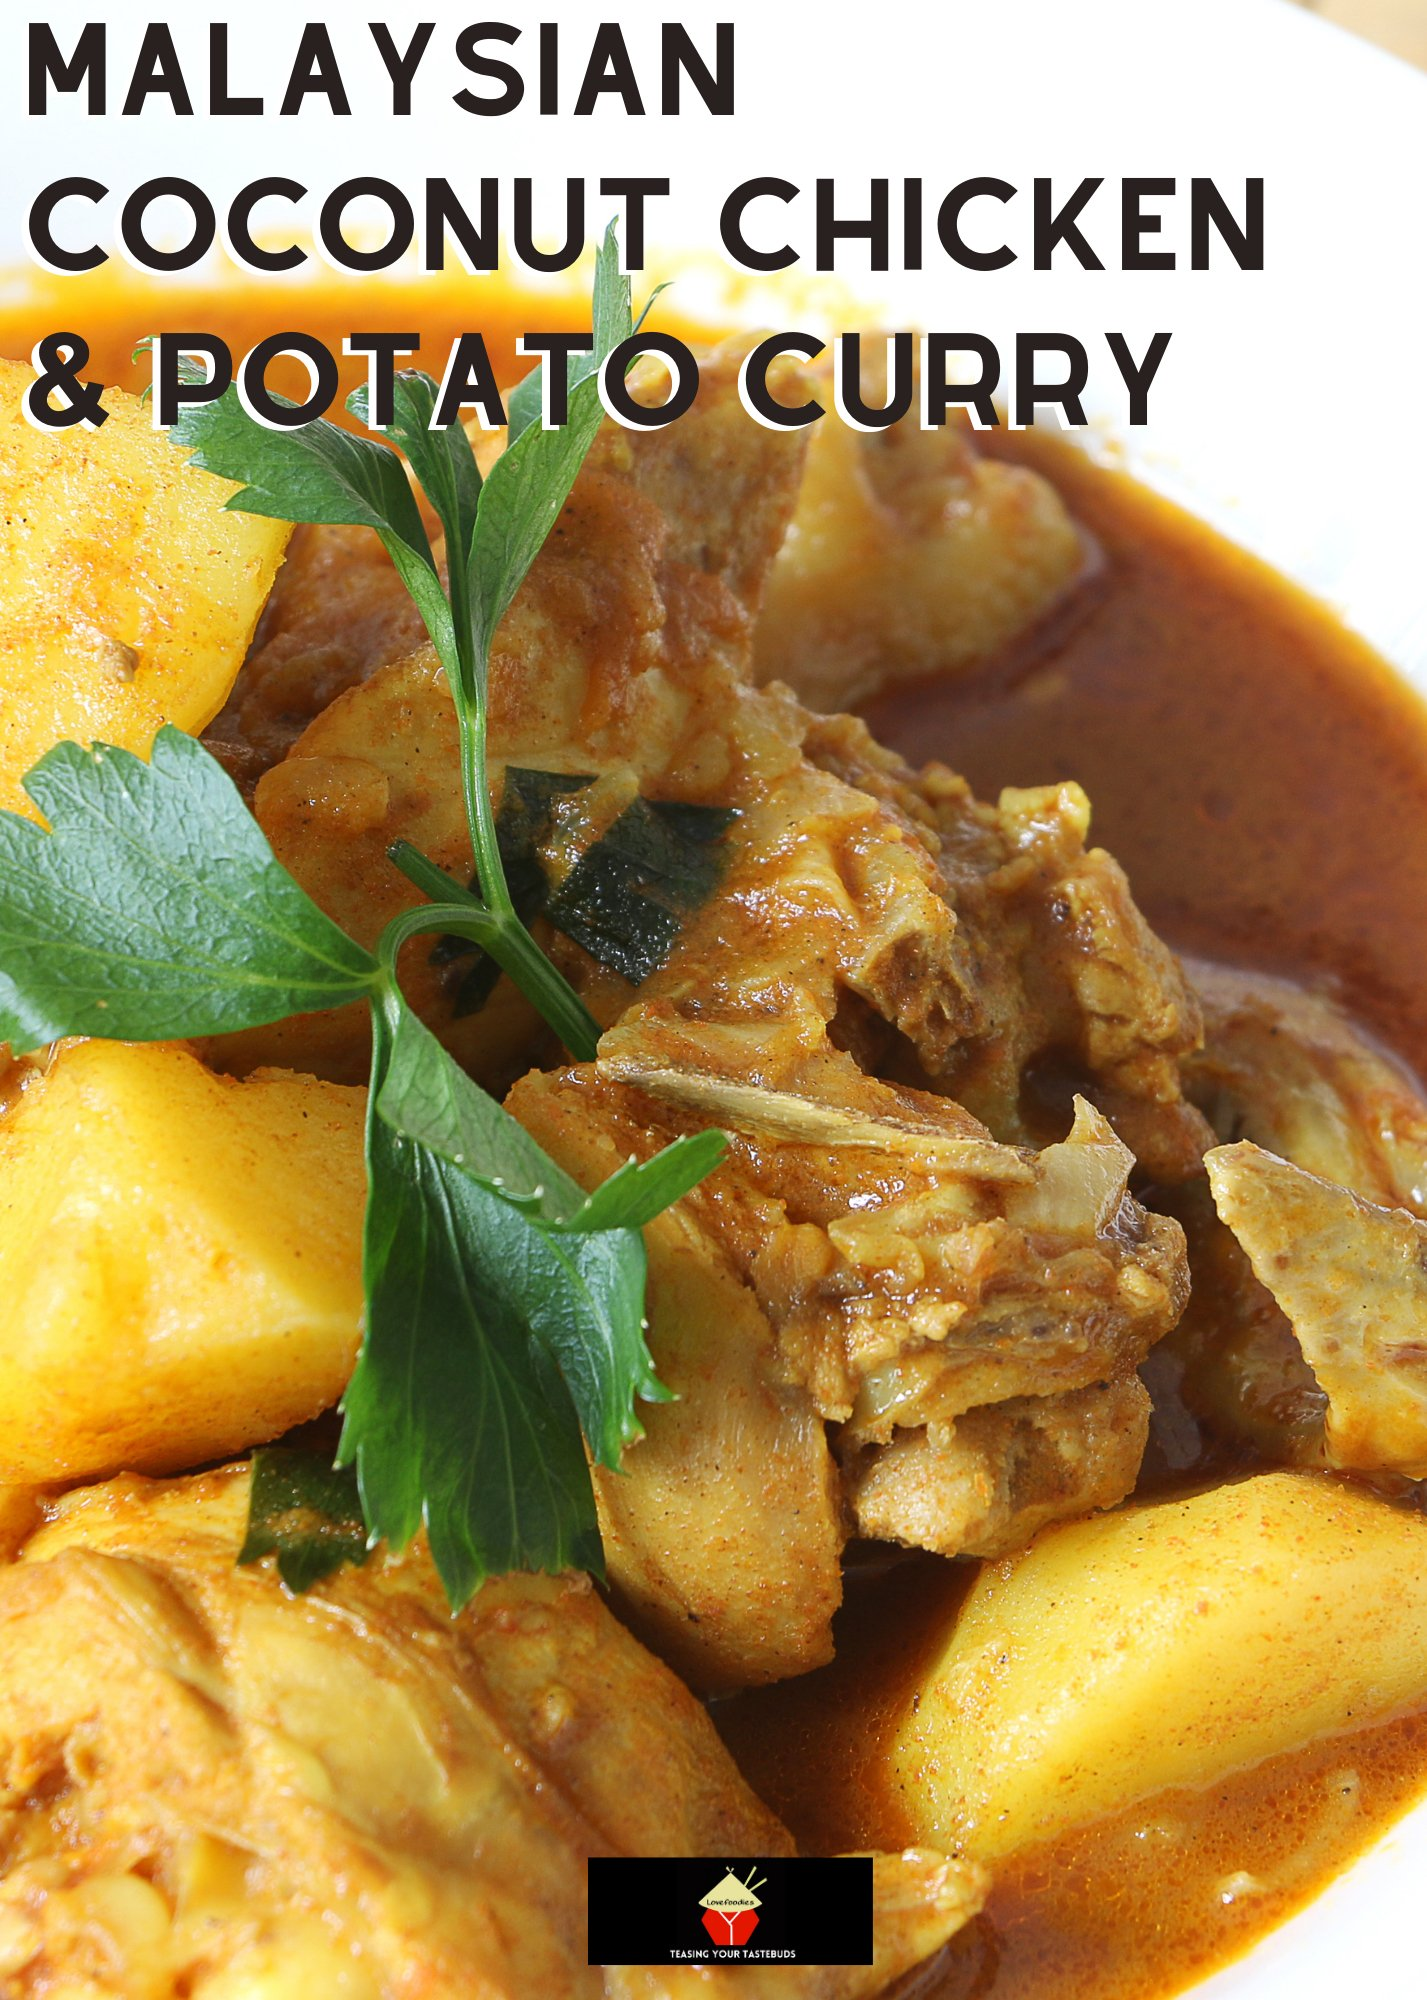 Cheats Malaysian Coconut Chicken and Potato Curry, easy no-fuss dinner, quick recipe and delicious with rice or naan bread. Simple ingredients for a tasty chicken dinner.